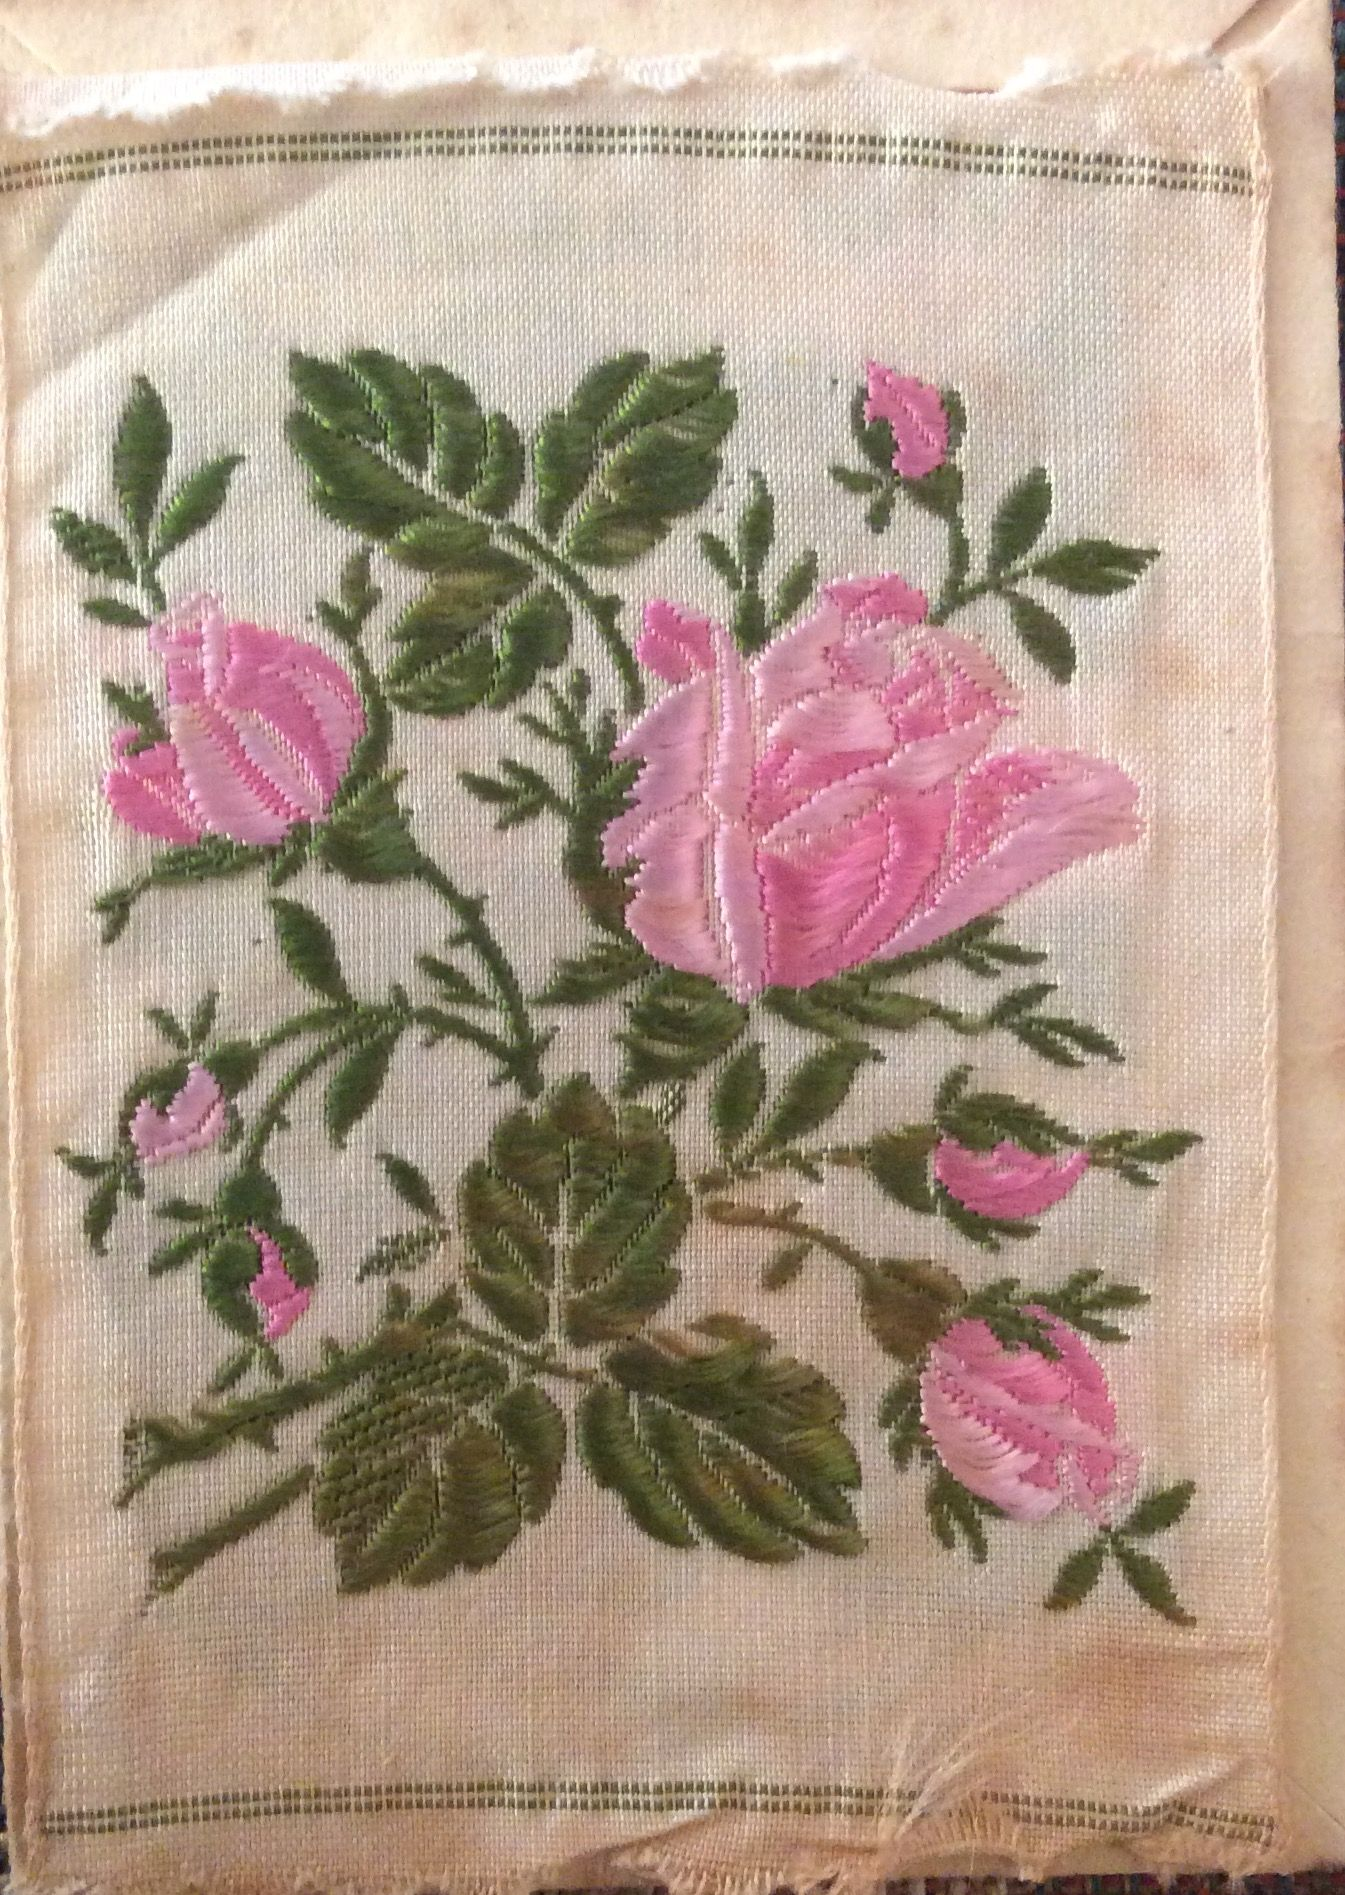 Kensitas Silk Cigarette Card Moss Rose 1930s Tobacco Silks